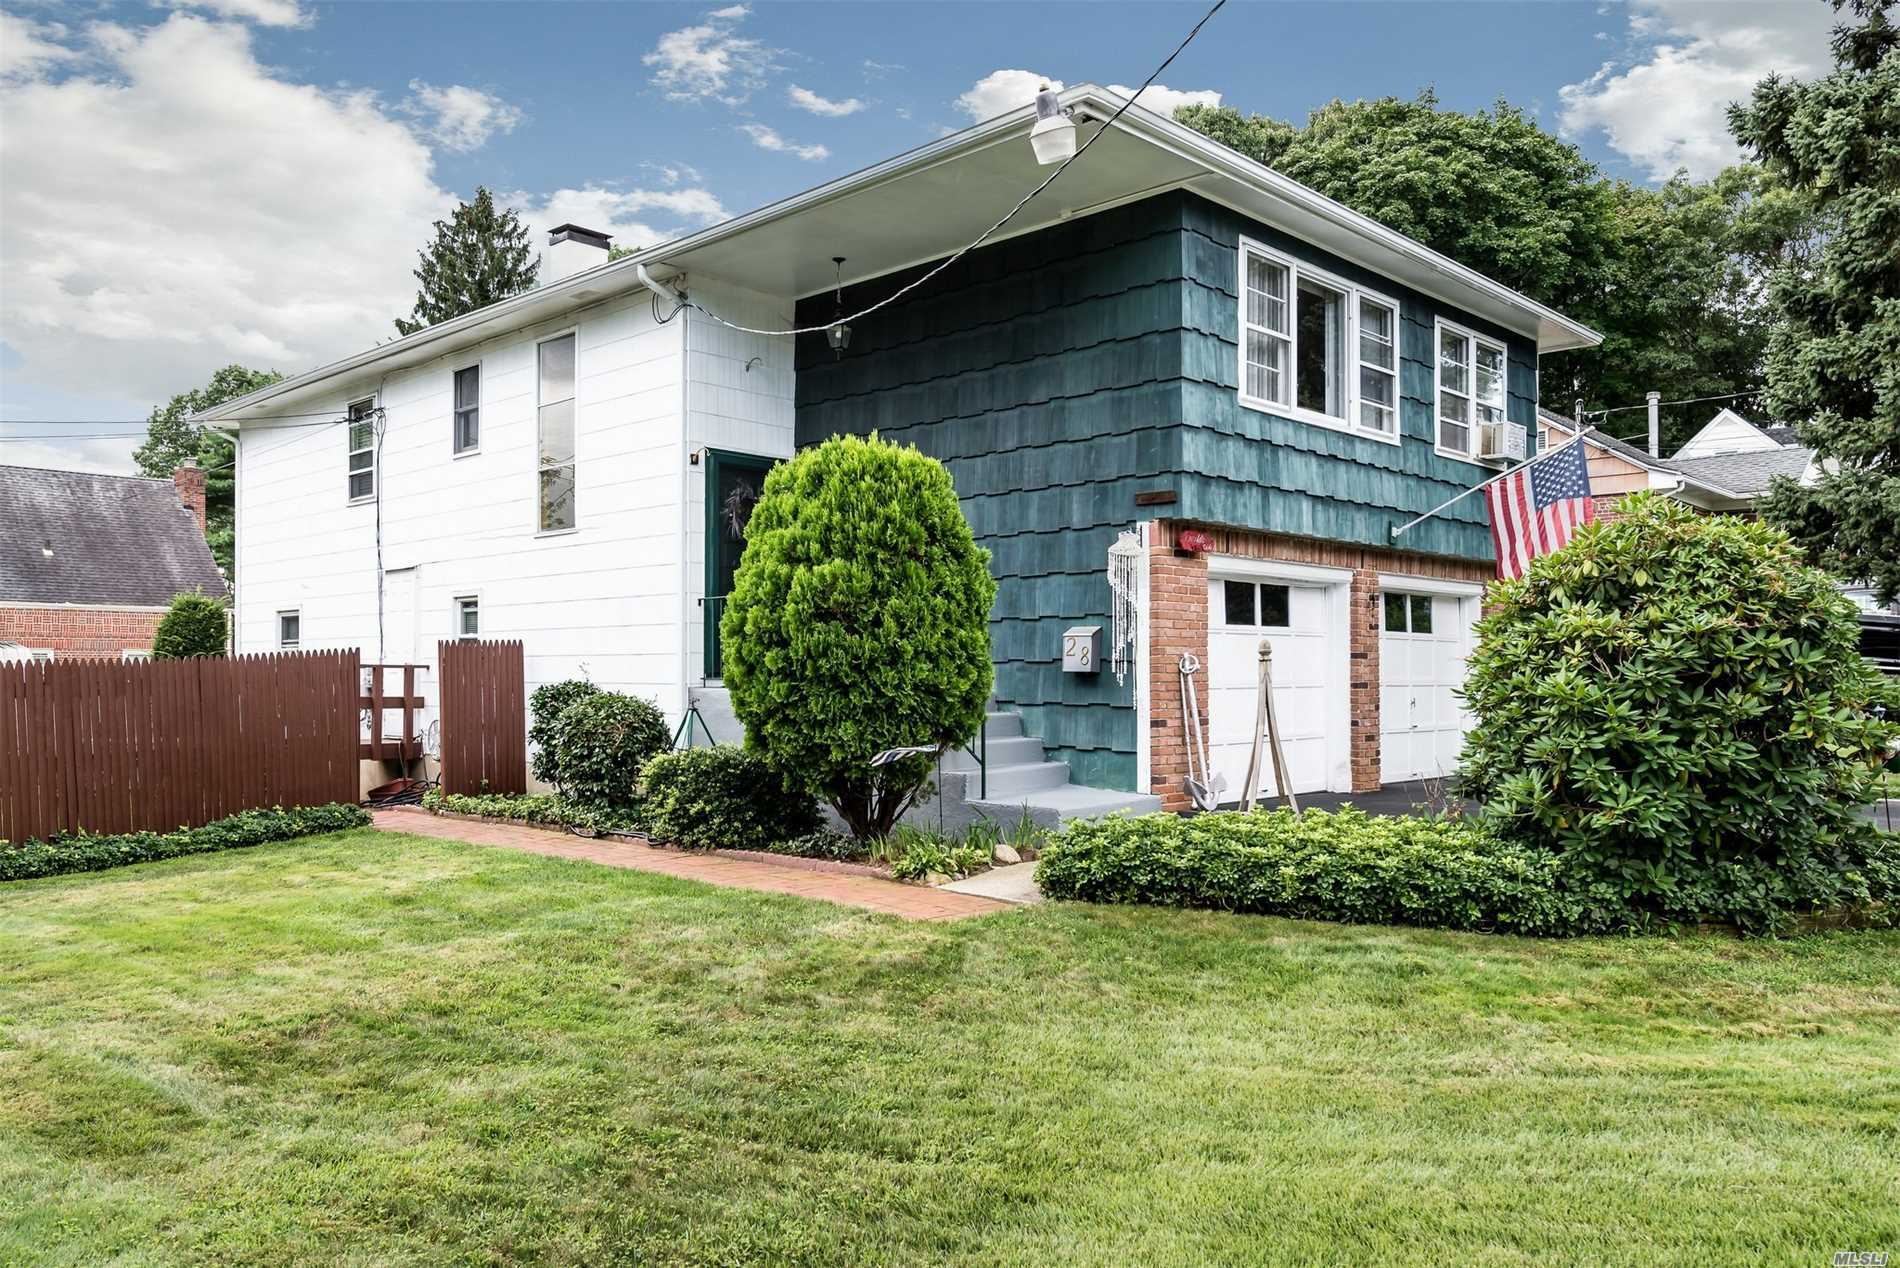 Wonderful, Sunny 4 Bedroom, 2 Bath Raised Ranch On A Corner Lot In Desirable Satinwood Rd. Move In Condition. Not In Flood Zone And Low Taxes. Bayville Beach And Tennis.